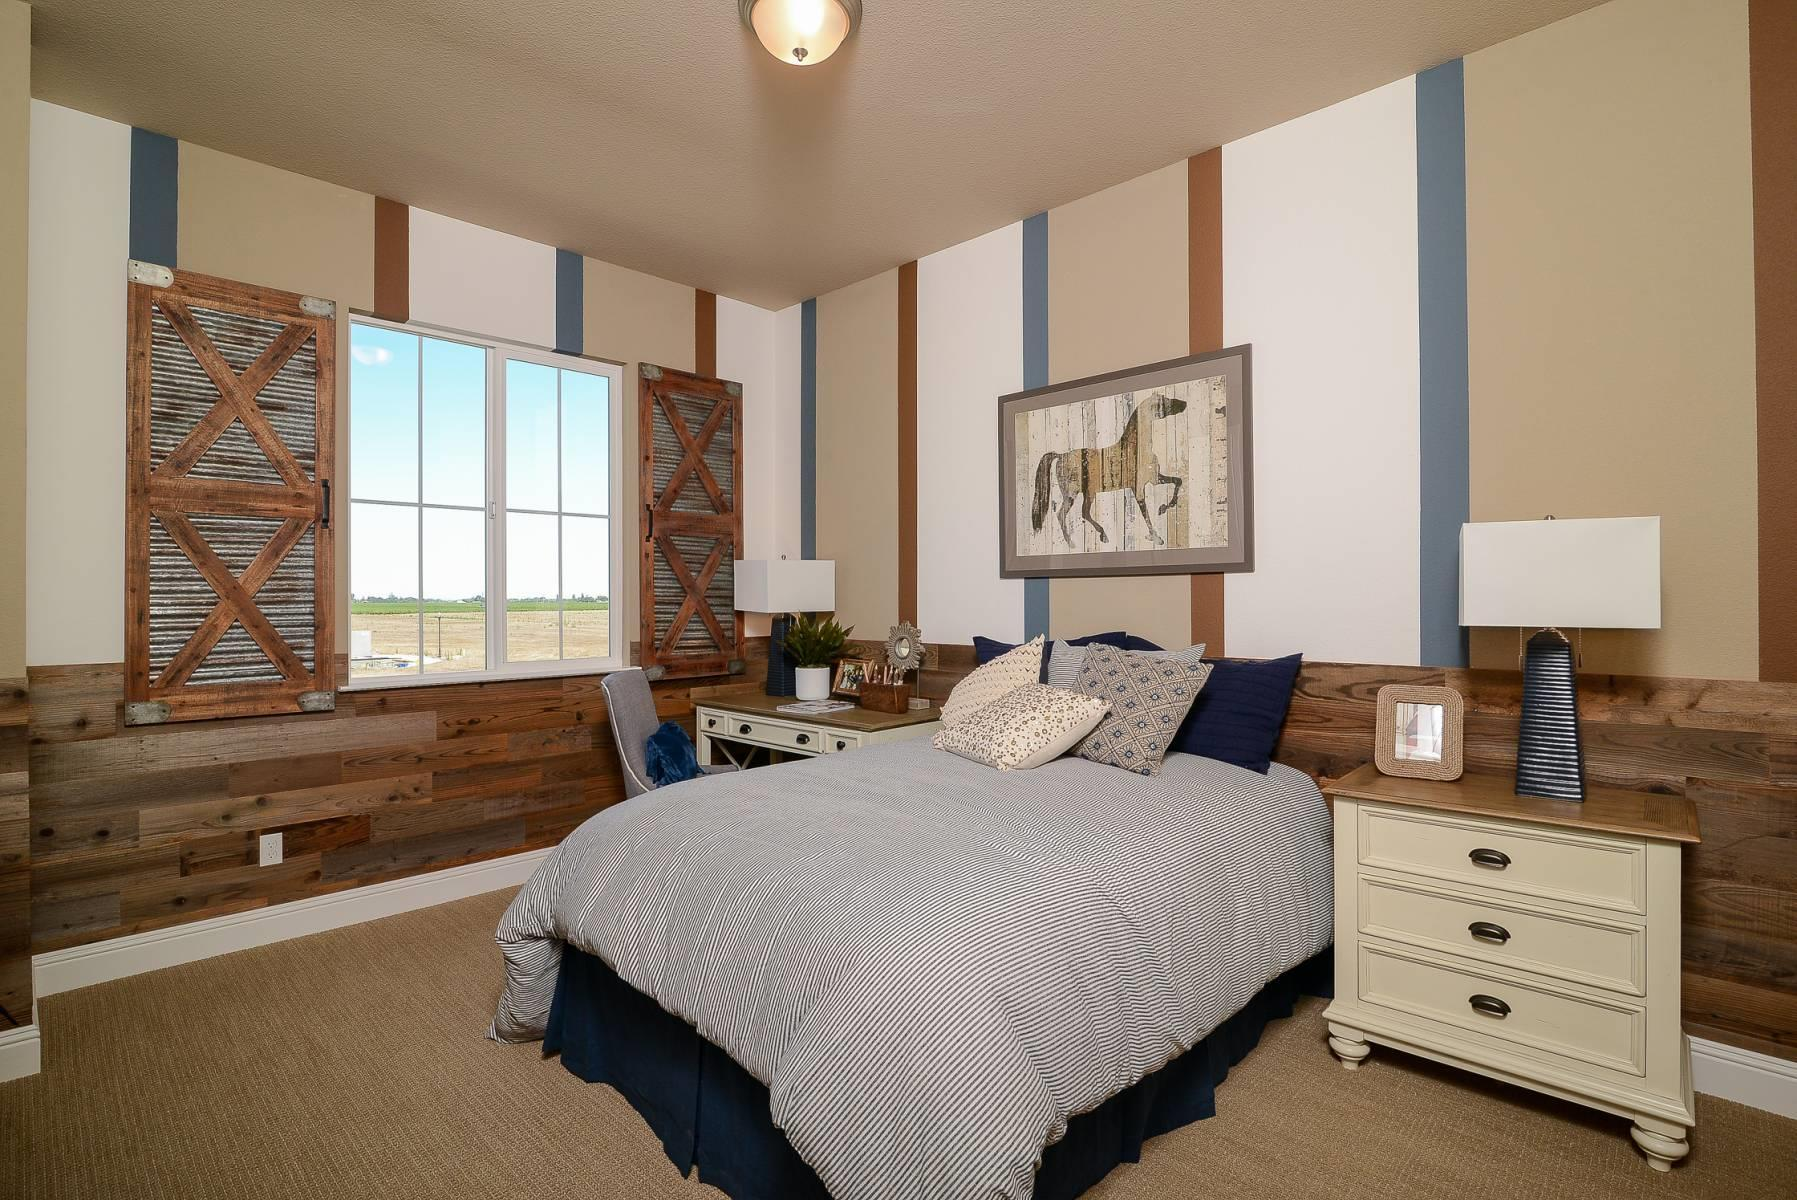 Bedroom featured in the Sangiovese By Elliott Homes in Stockton-Lodi, CA